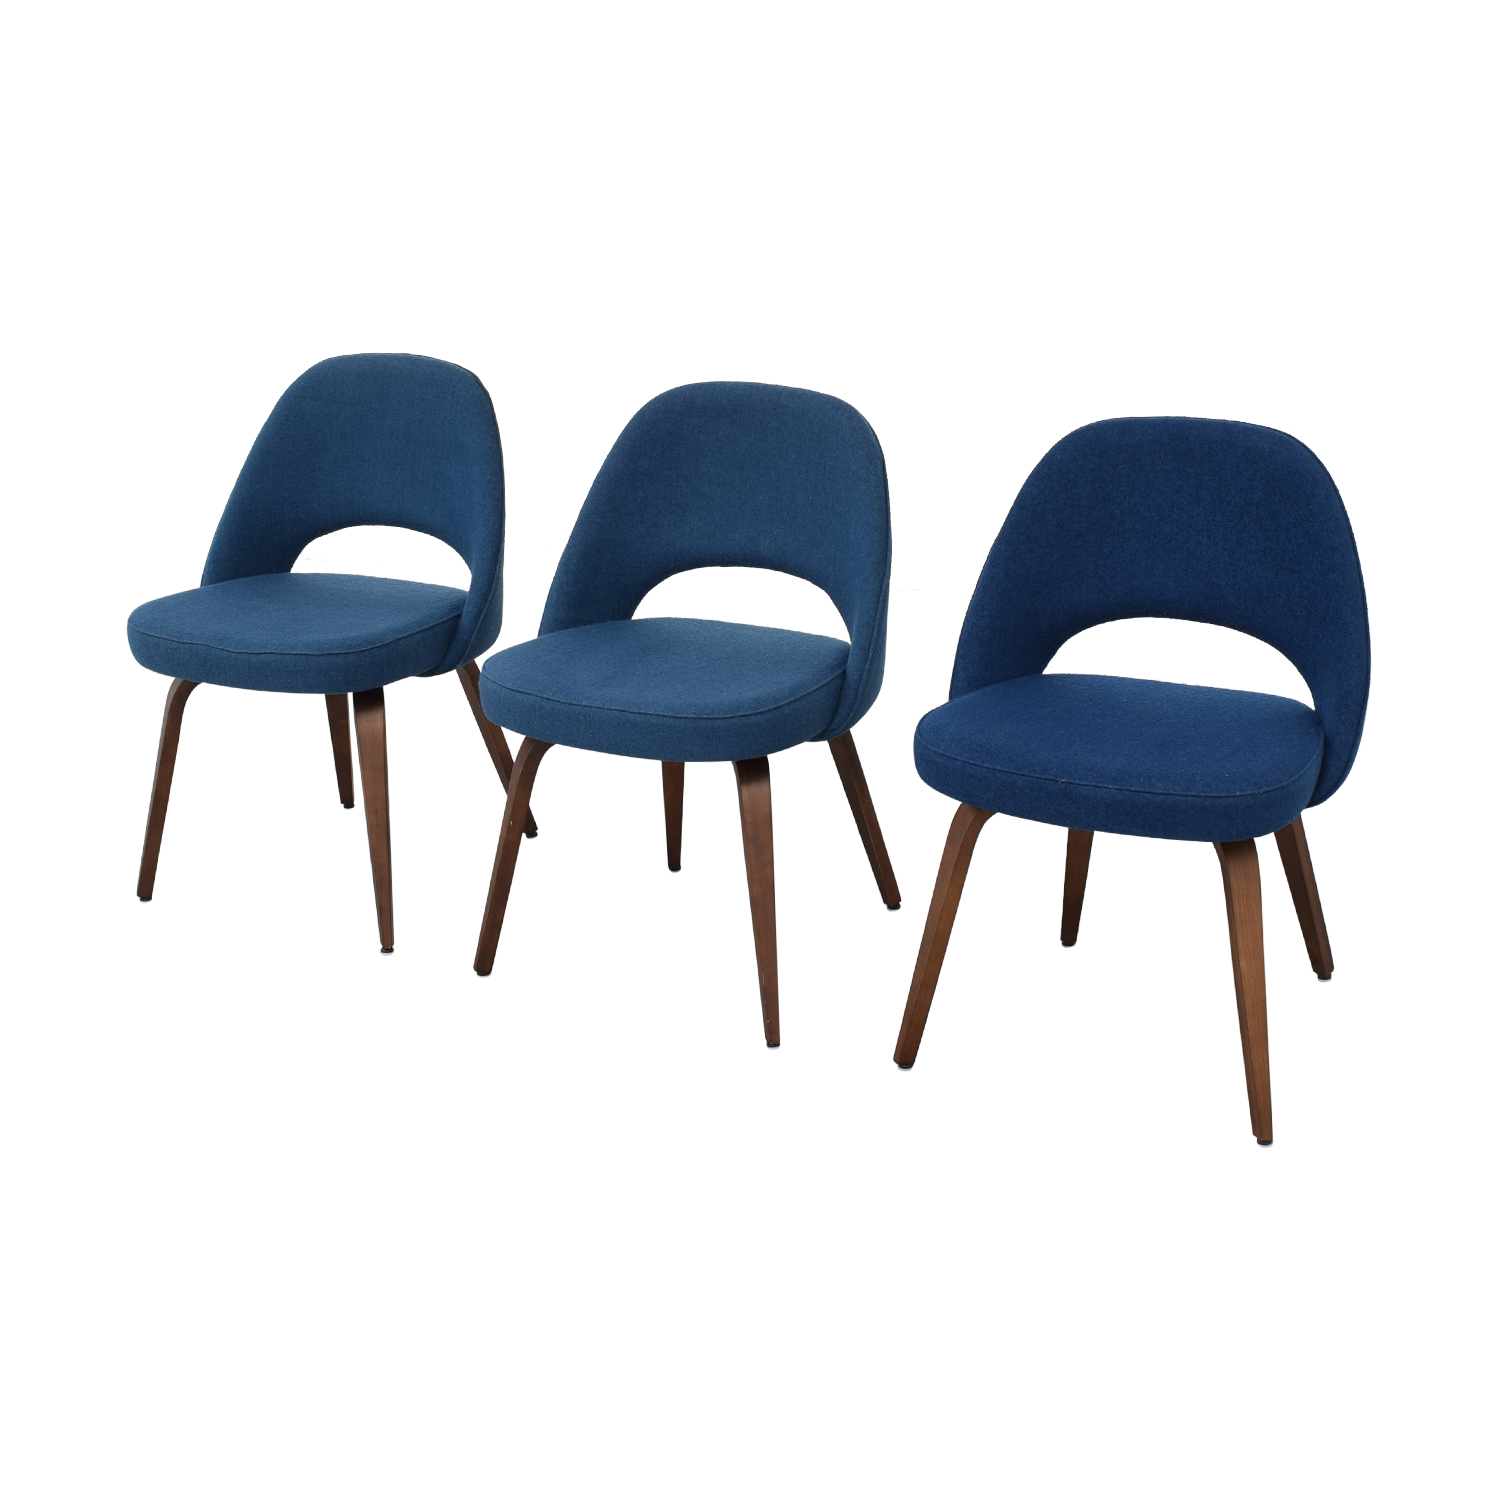 Rove Concepts Rove Concepts Executive Side Chairs second hand